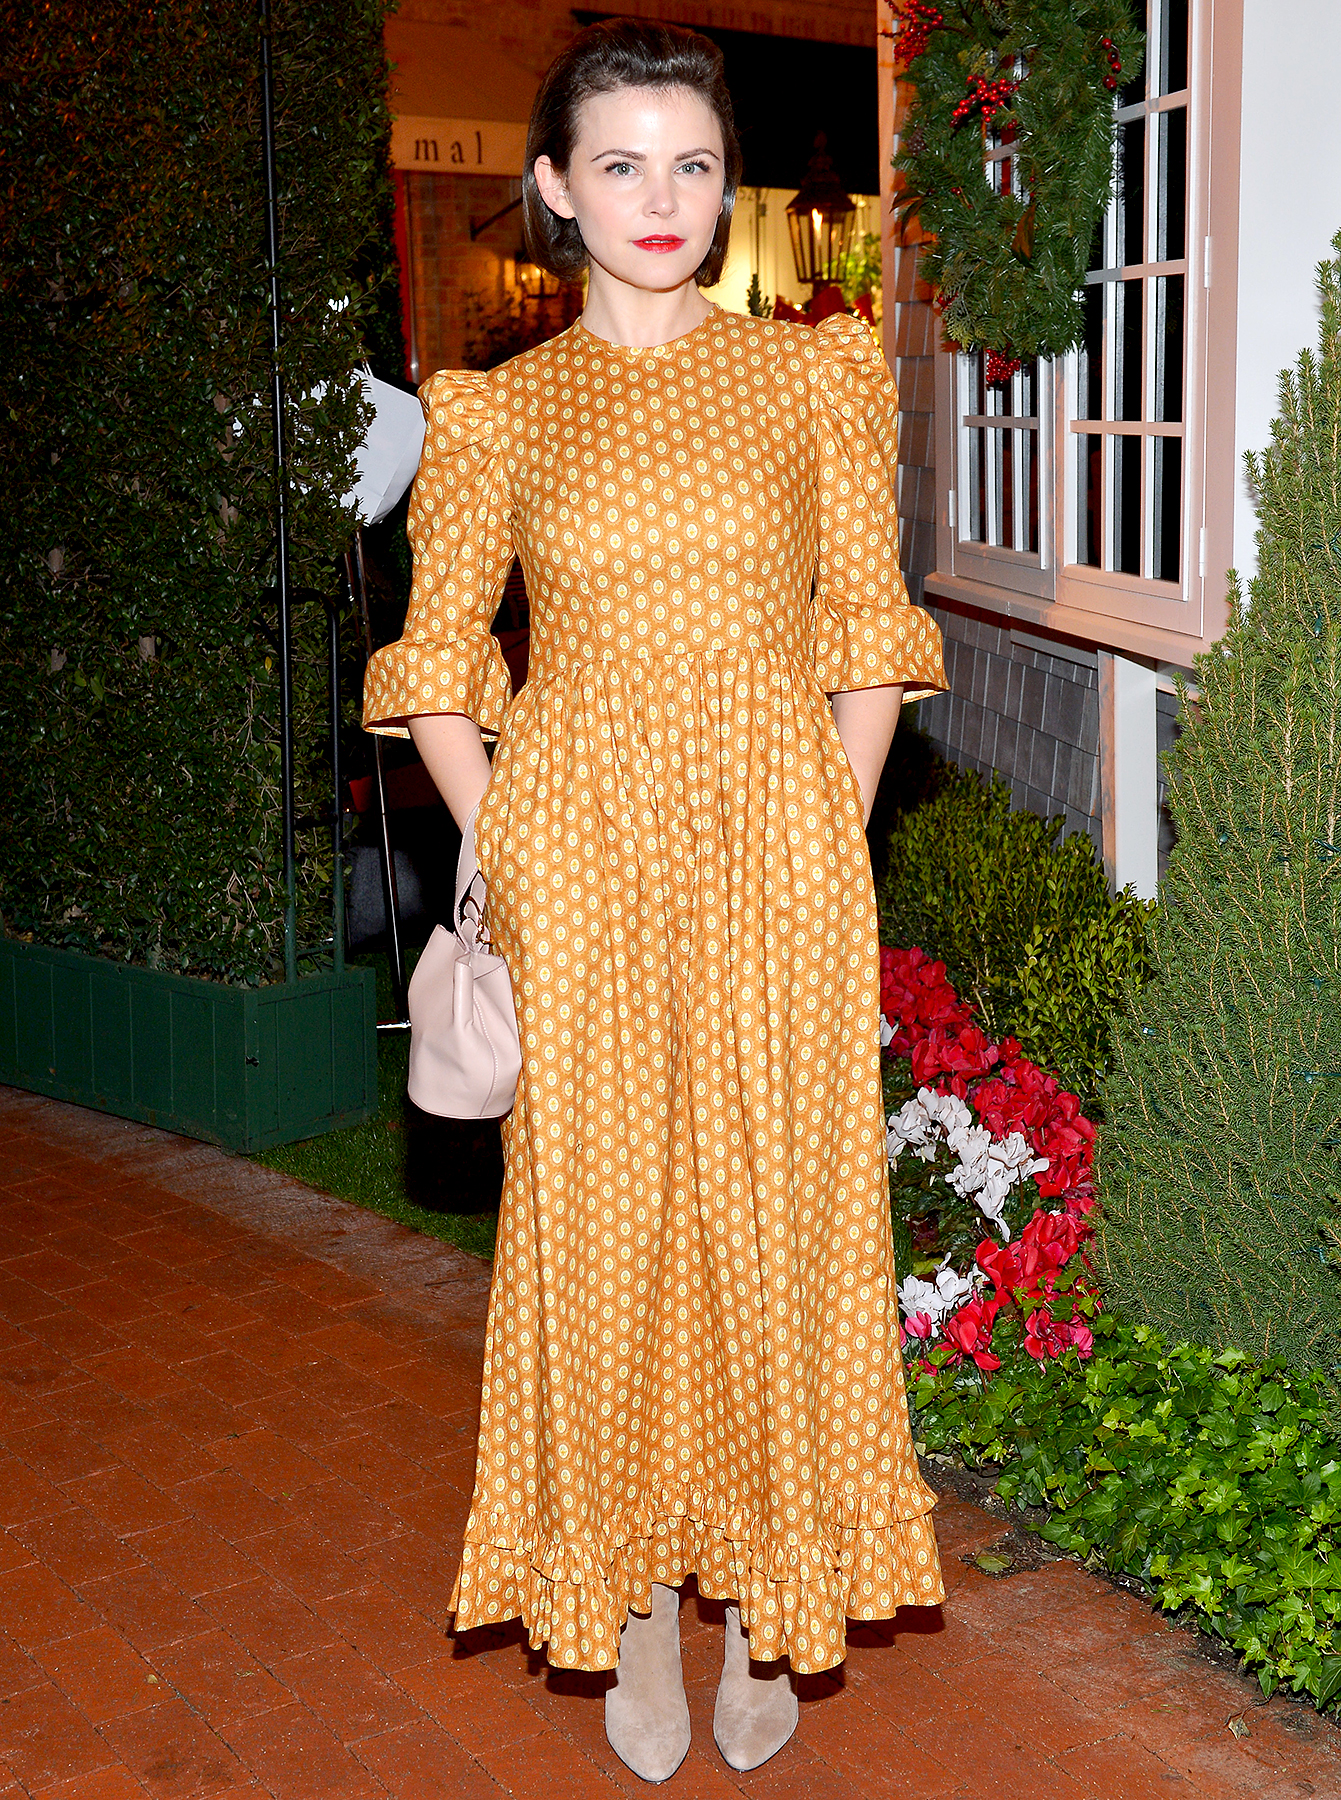 Ginnifer-Goodwin-Josh-Dallas-Marriage-Hot - Ginnifer Goodwin attends the Tamara Mellon Palisades Village Opening Party at Blue Ribbon Sushi on December 11, 2018 in Pacific Palisades, California.